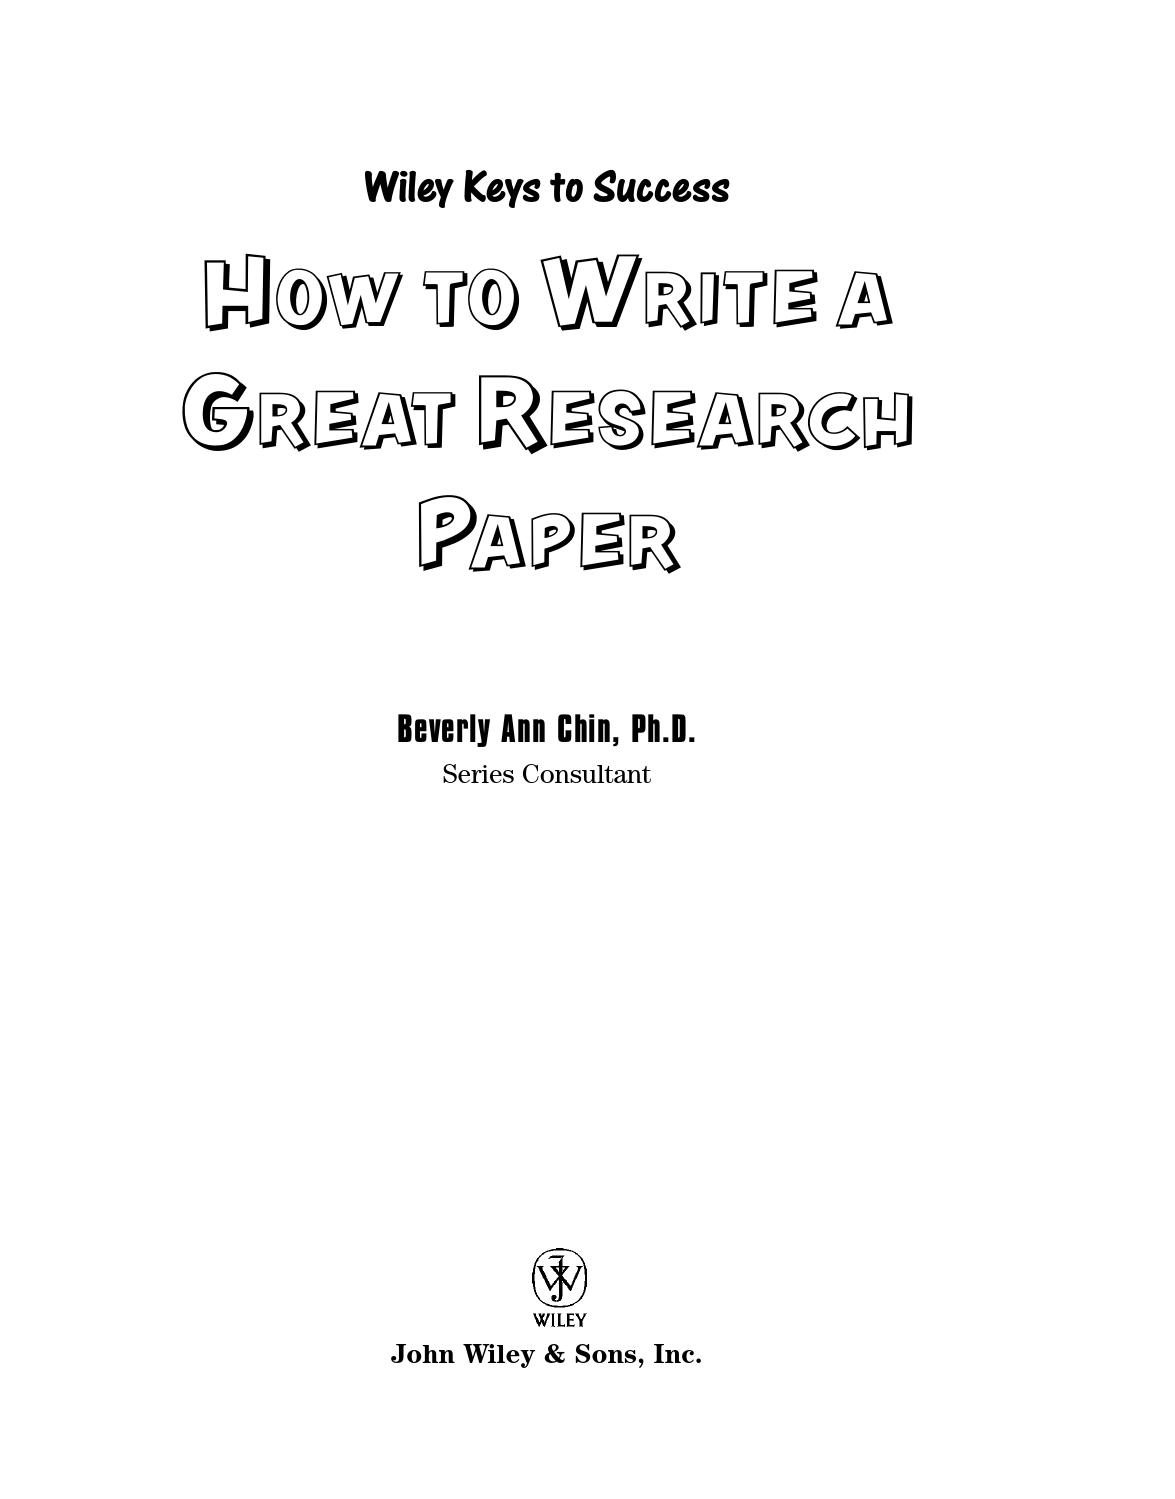 001 Research Paper How To Write Great Wiley Keys Success Page 1 Archaicawful A (wiley Success) Full